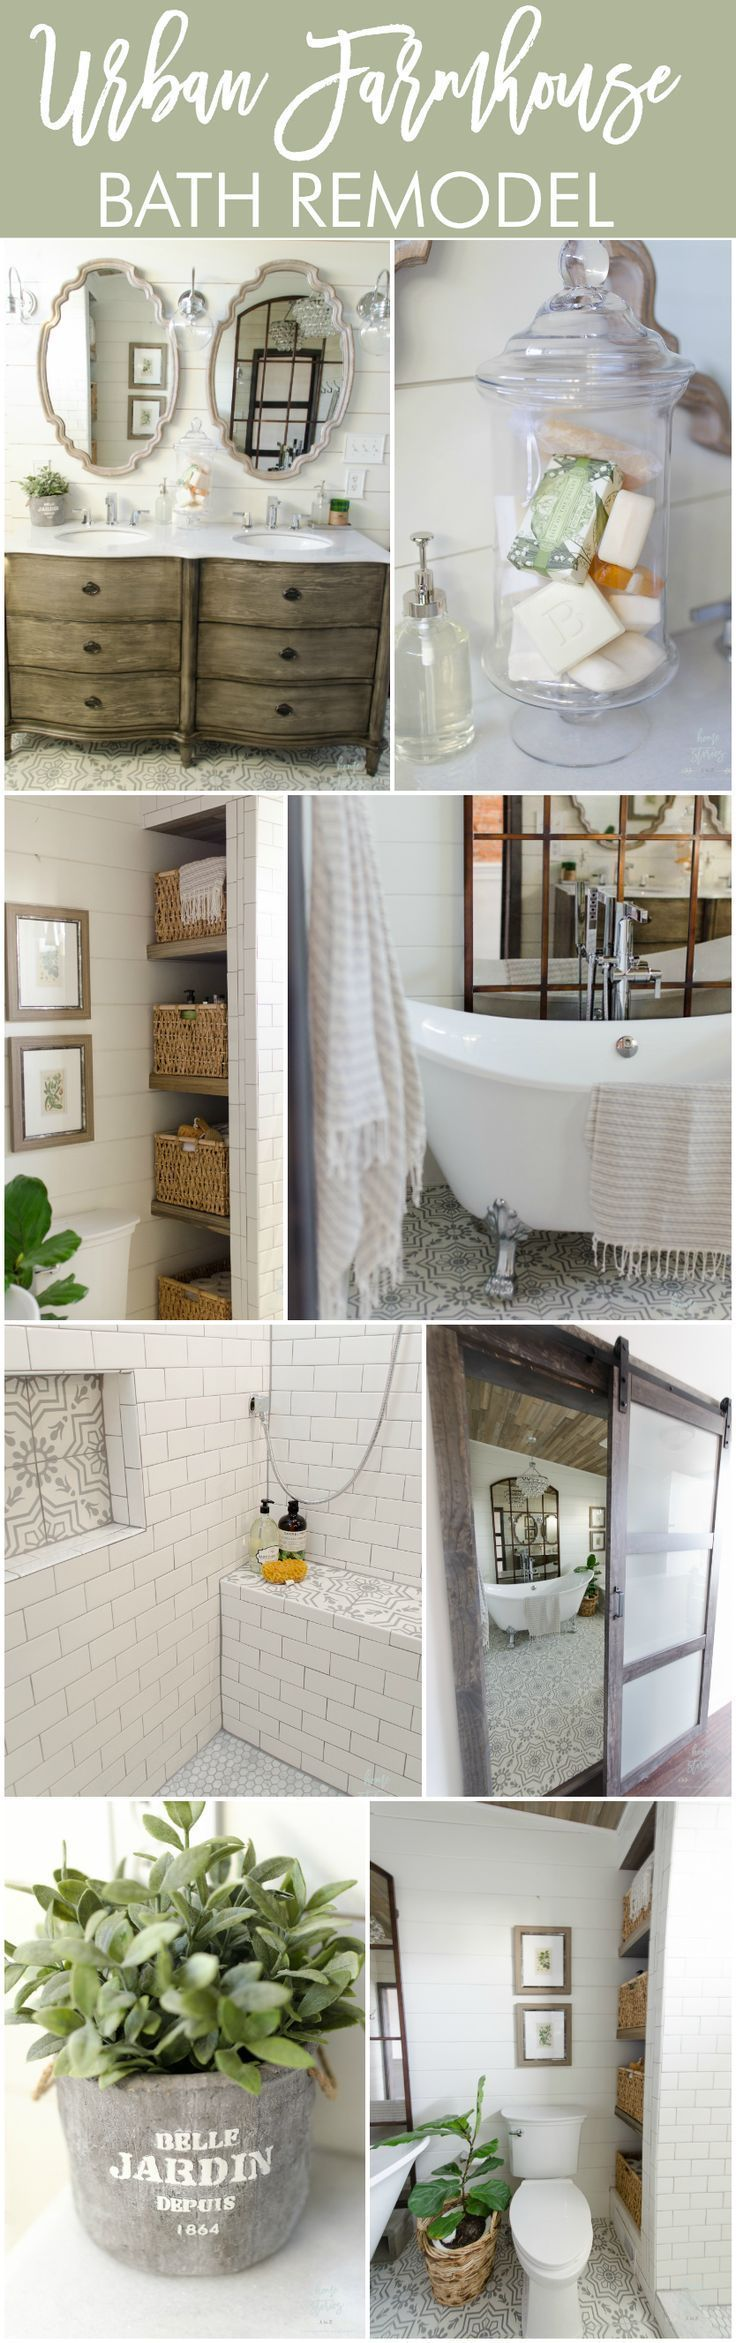 381 best bathrooms images on pinterest at the beach for Urban bathroom ideas